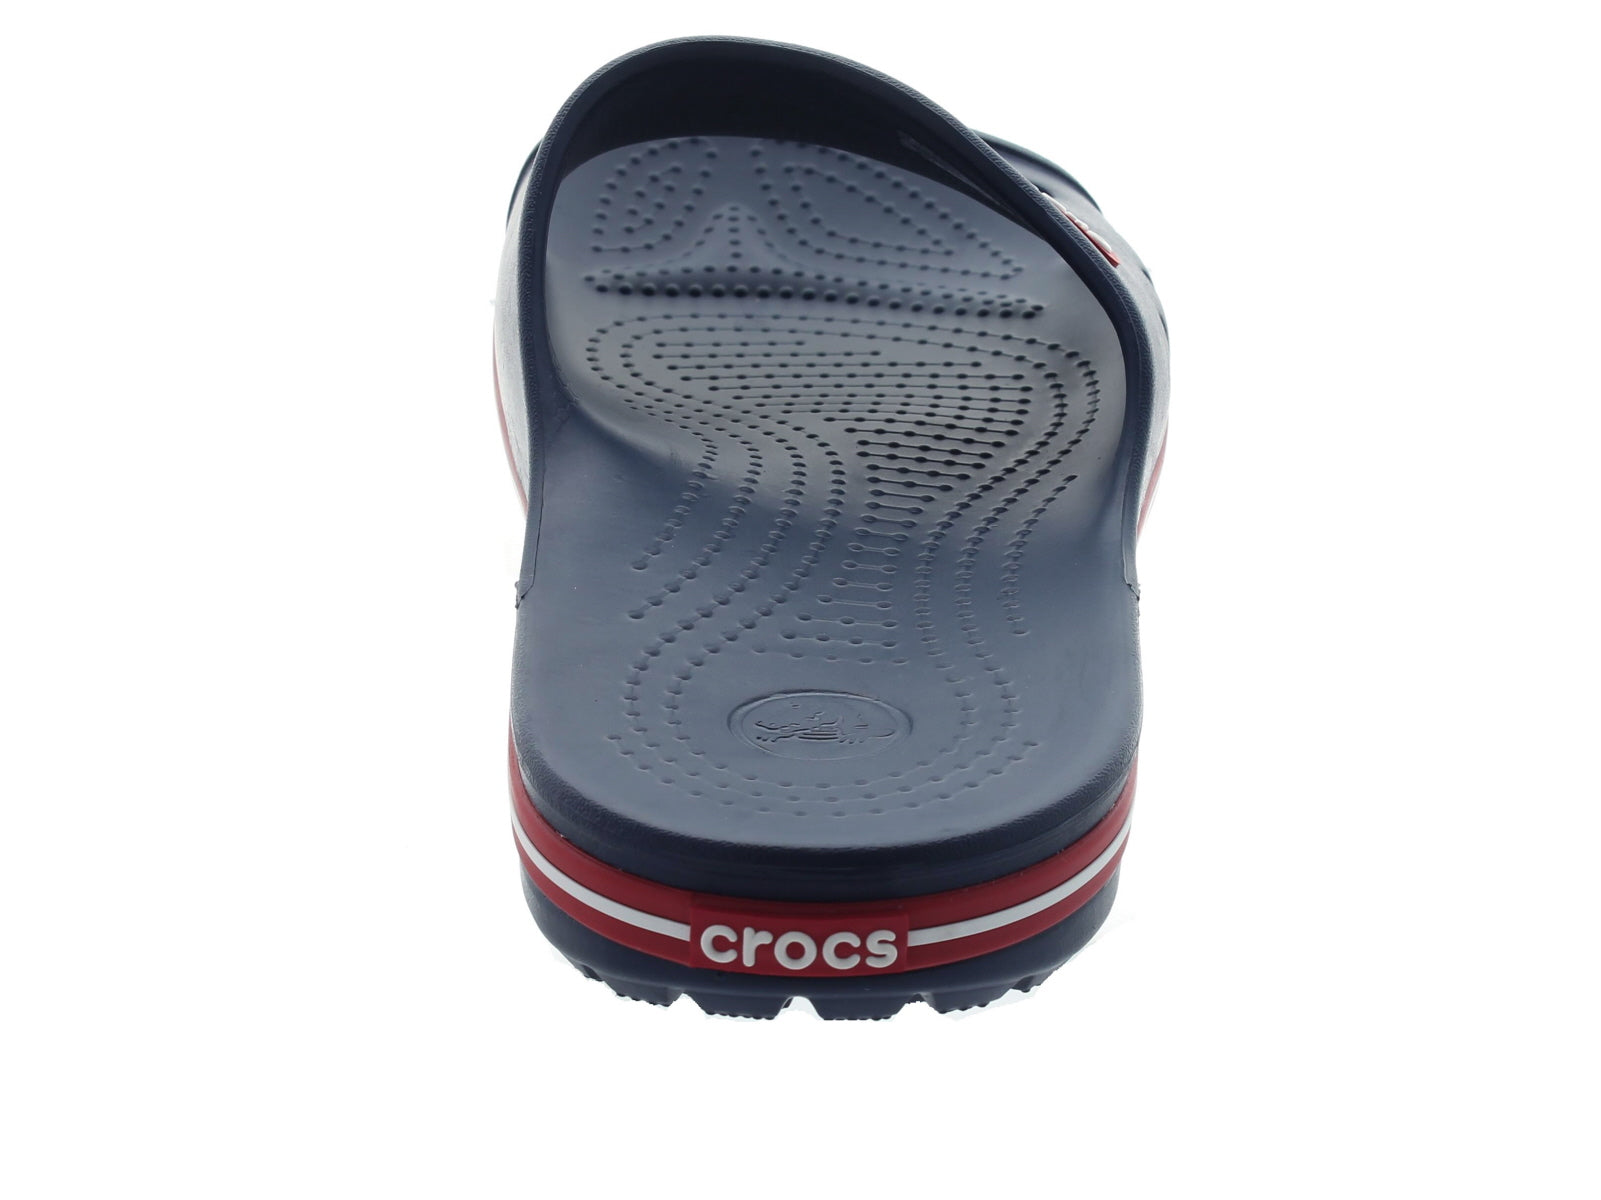 Crocband 11 Slide in Navy back view